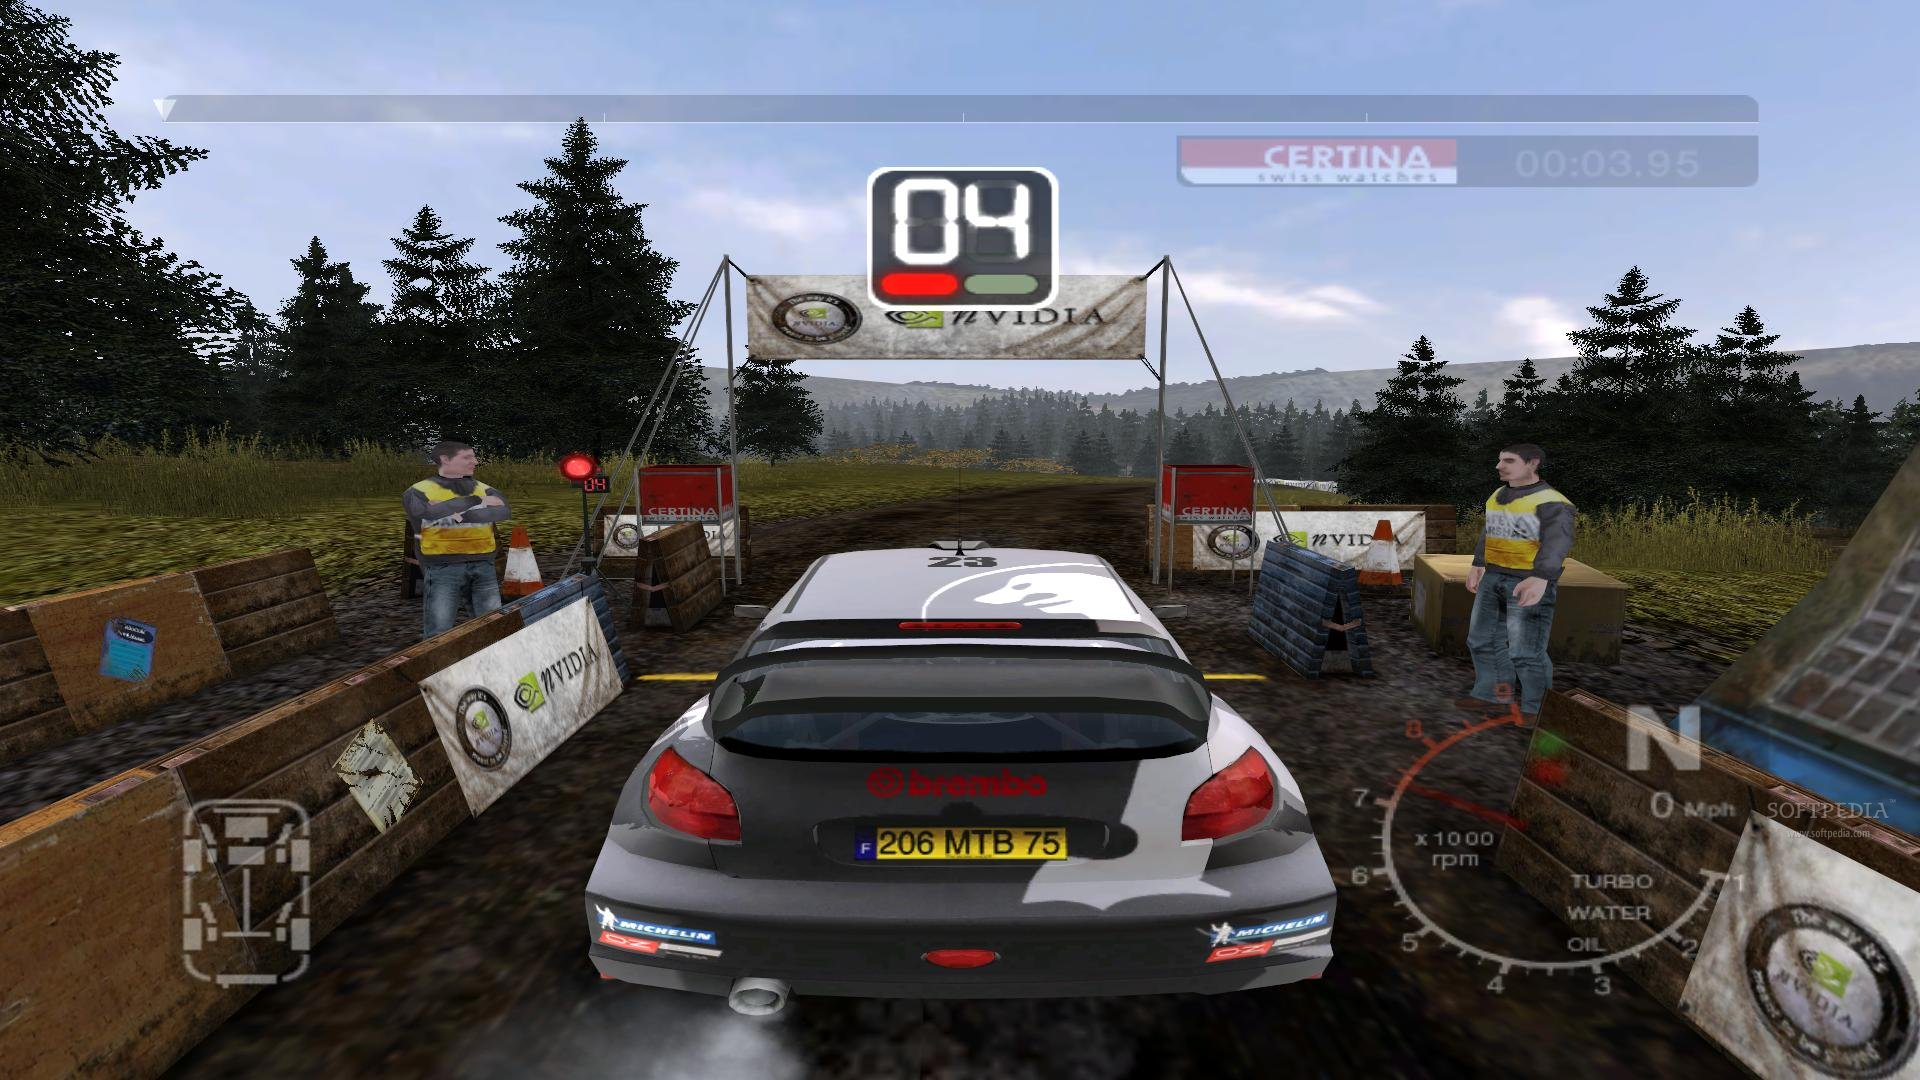 free download colin mcrae rally 2005 pc game full version